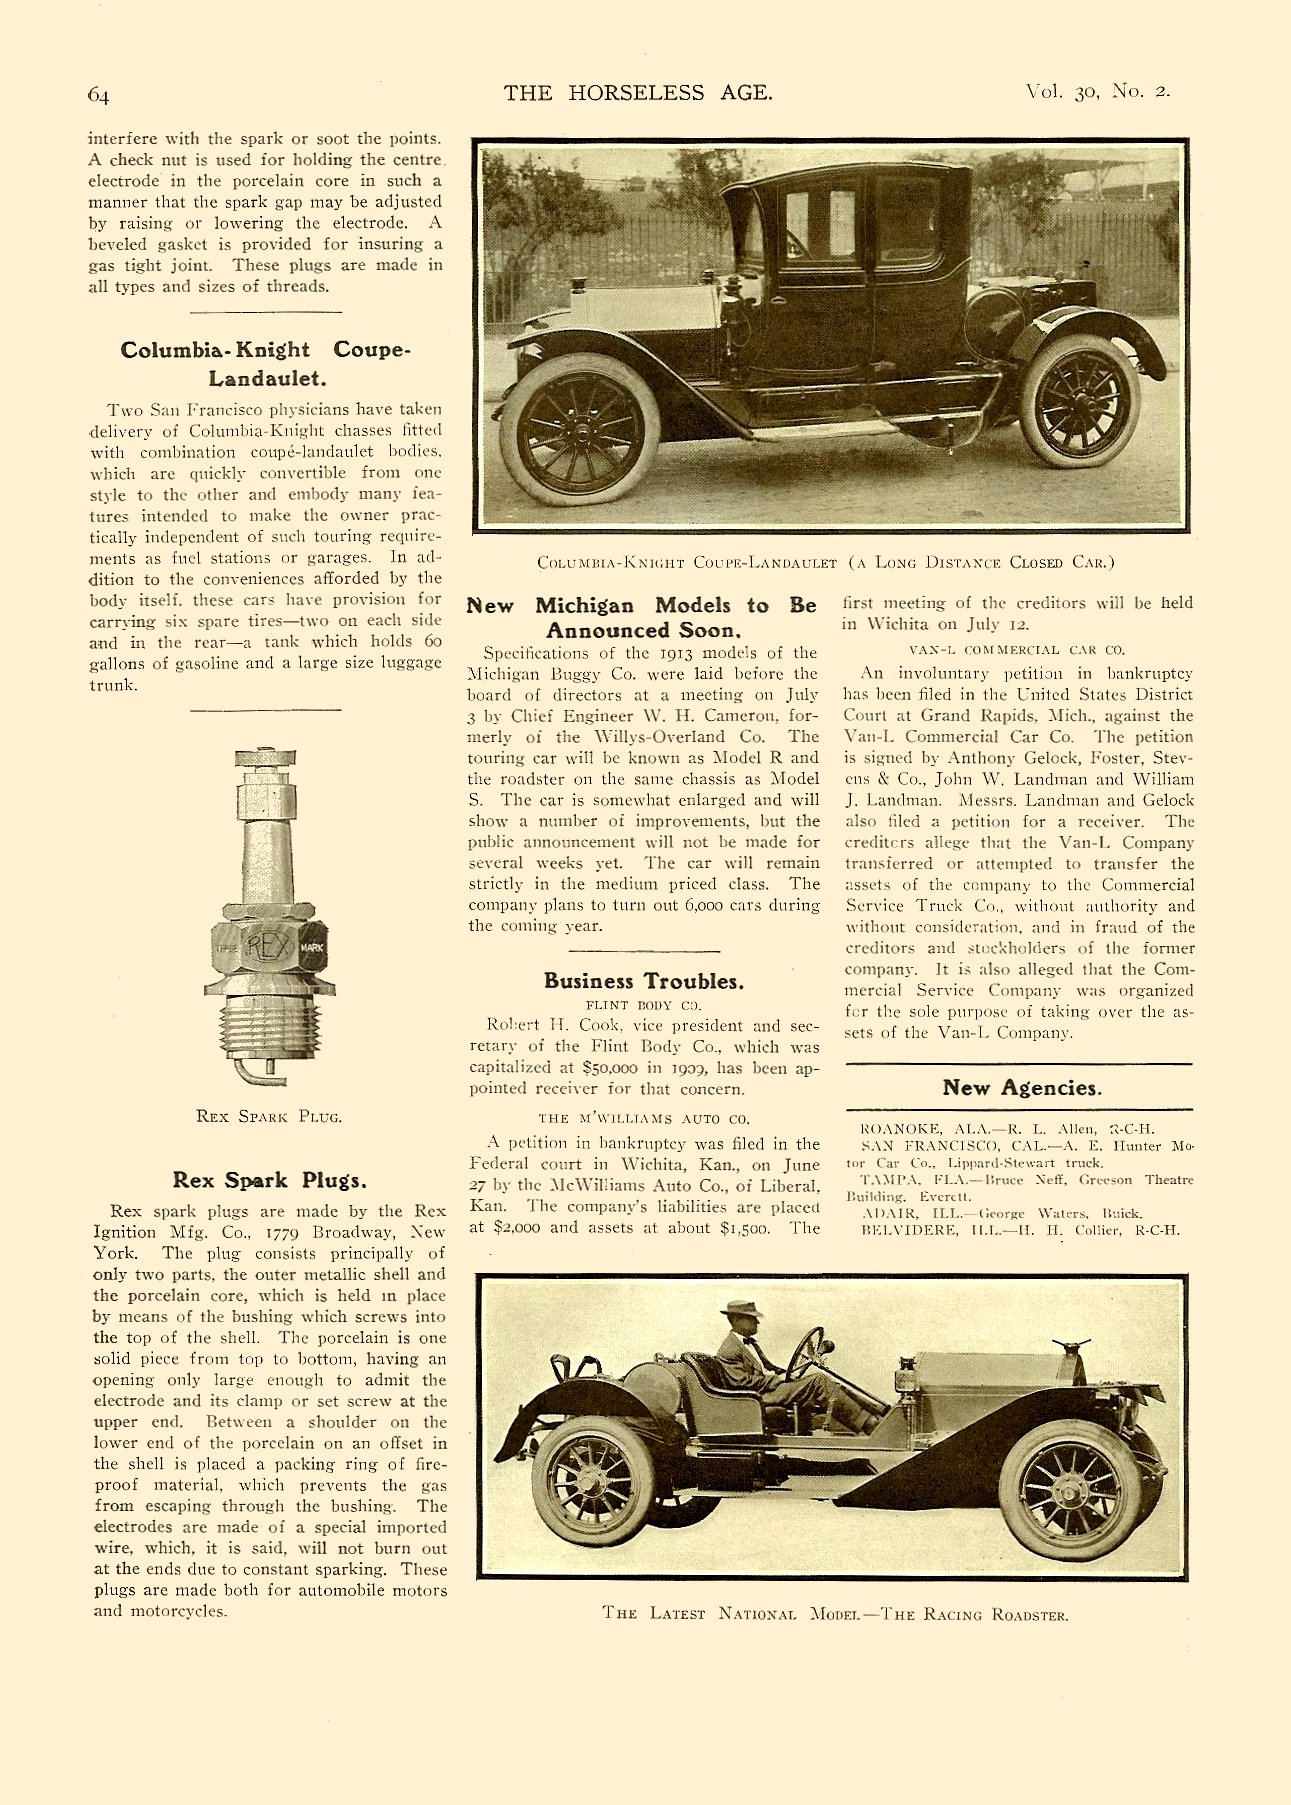 1912 7 10 NATIONAL The Latest National Model – The Racing Roadster THE HORSELESS AGE Vol. 30, No. 2 July 10, 1912 9″x12″ page 64